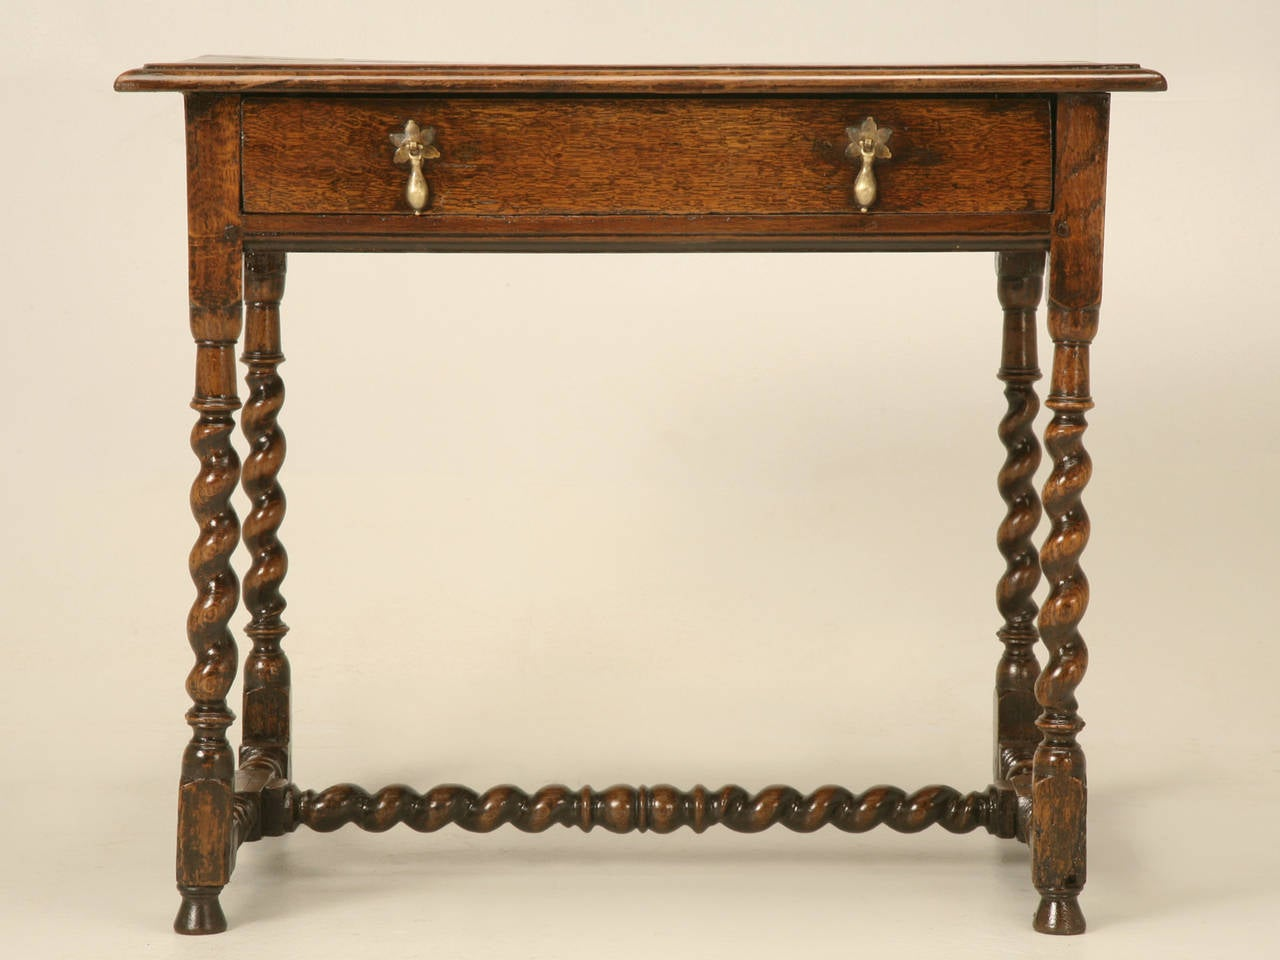 English Country Style Writing Desk or End Table, circa 1700s For Sale 2